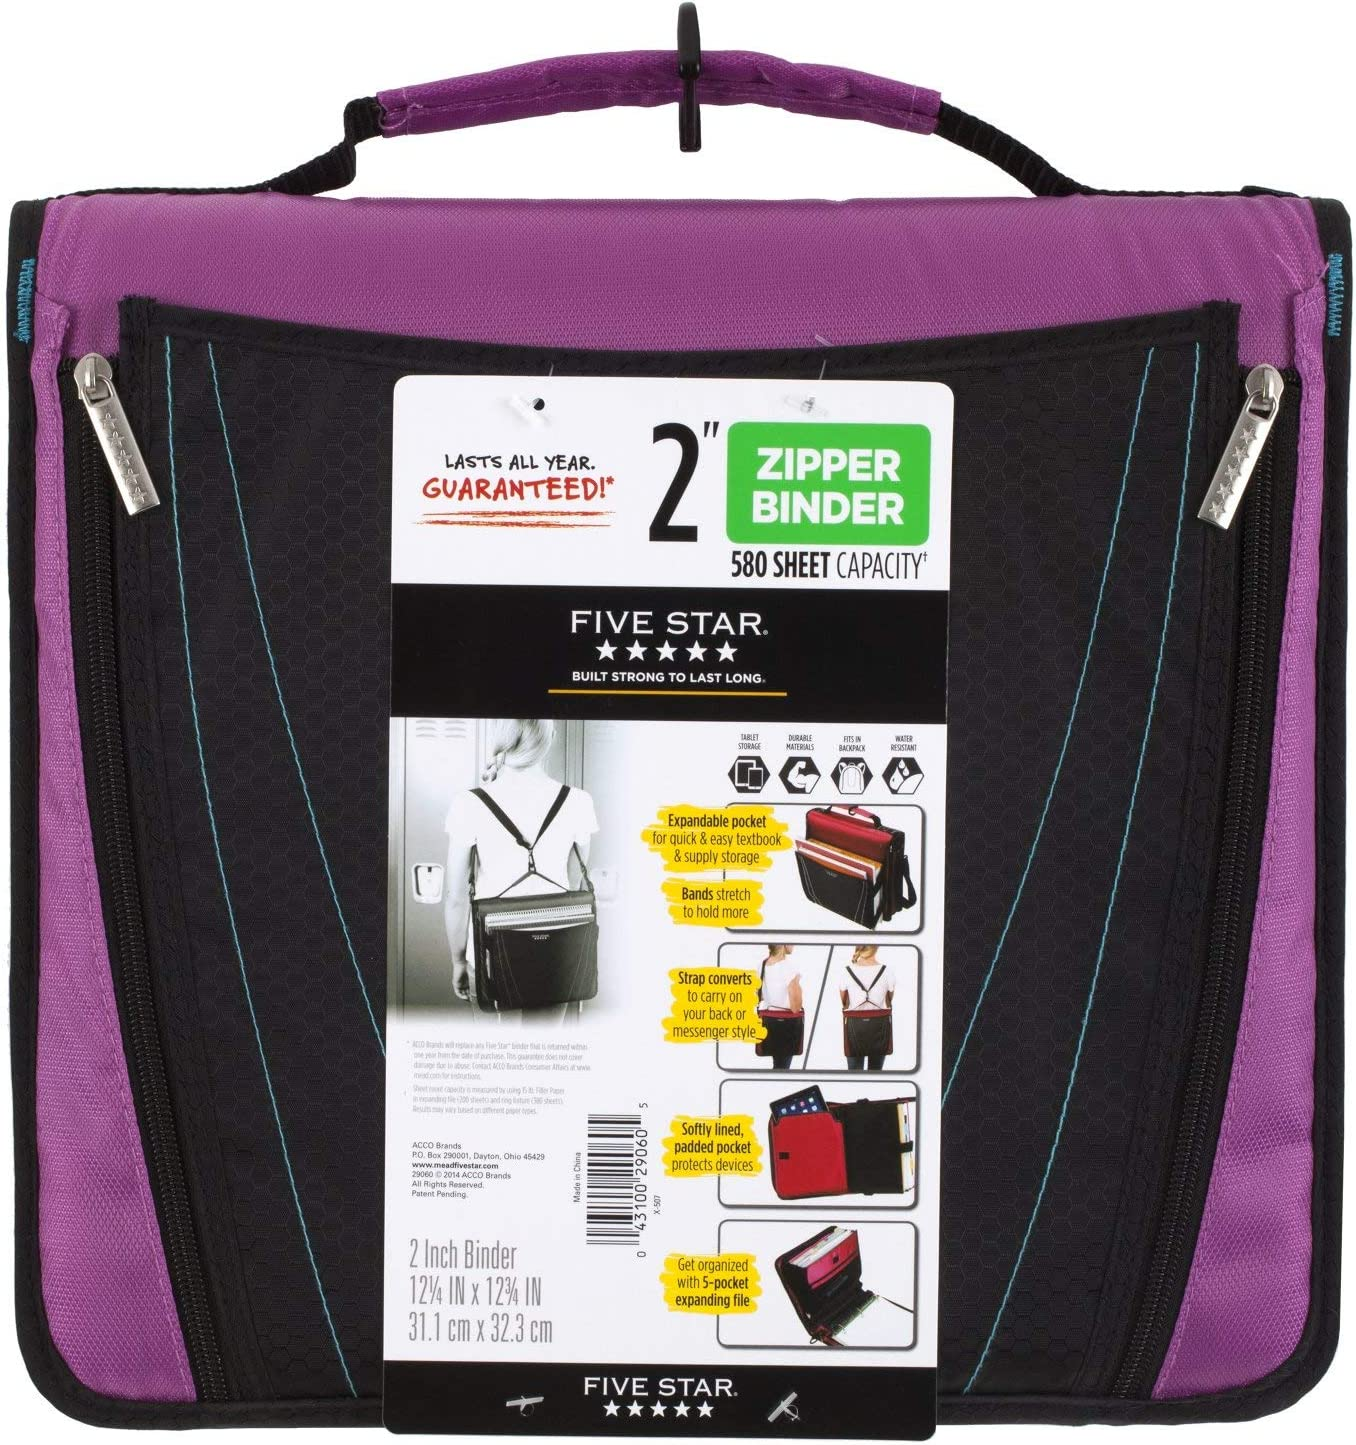 Five Star Zipper Binder, 2 Inch 3 Ring Binder, Expanding Pocket, Durable, Purple (73303)